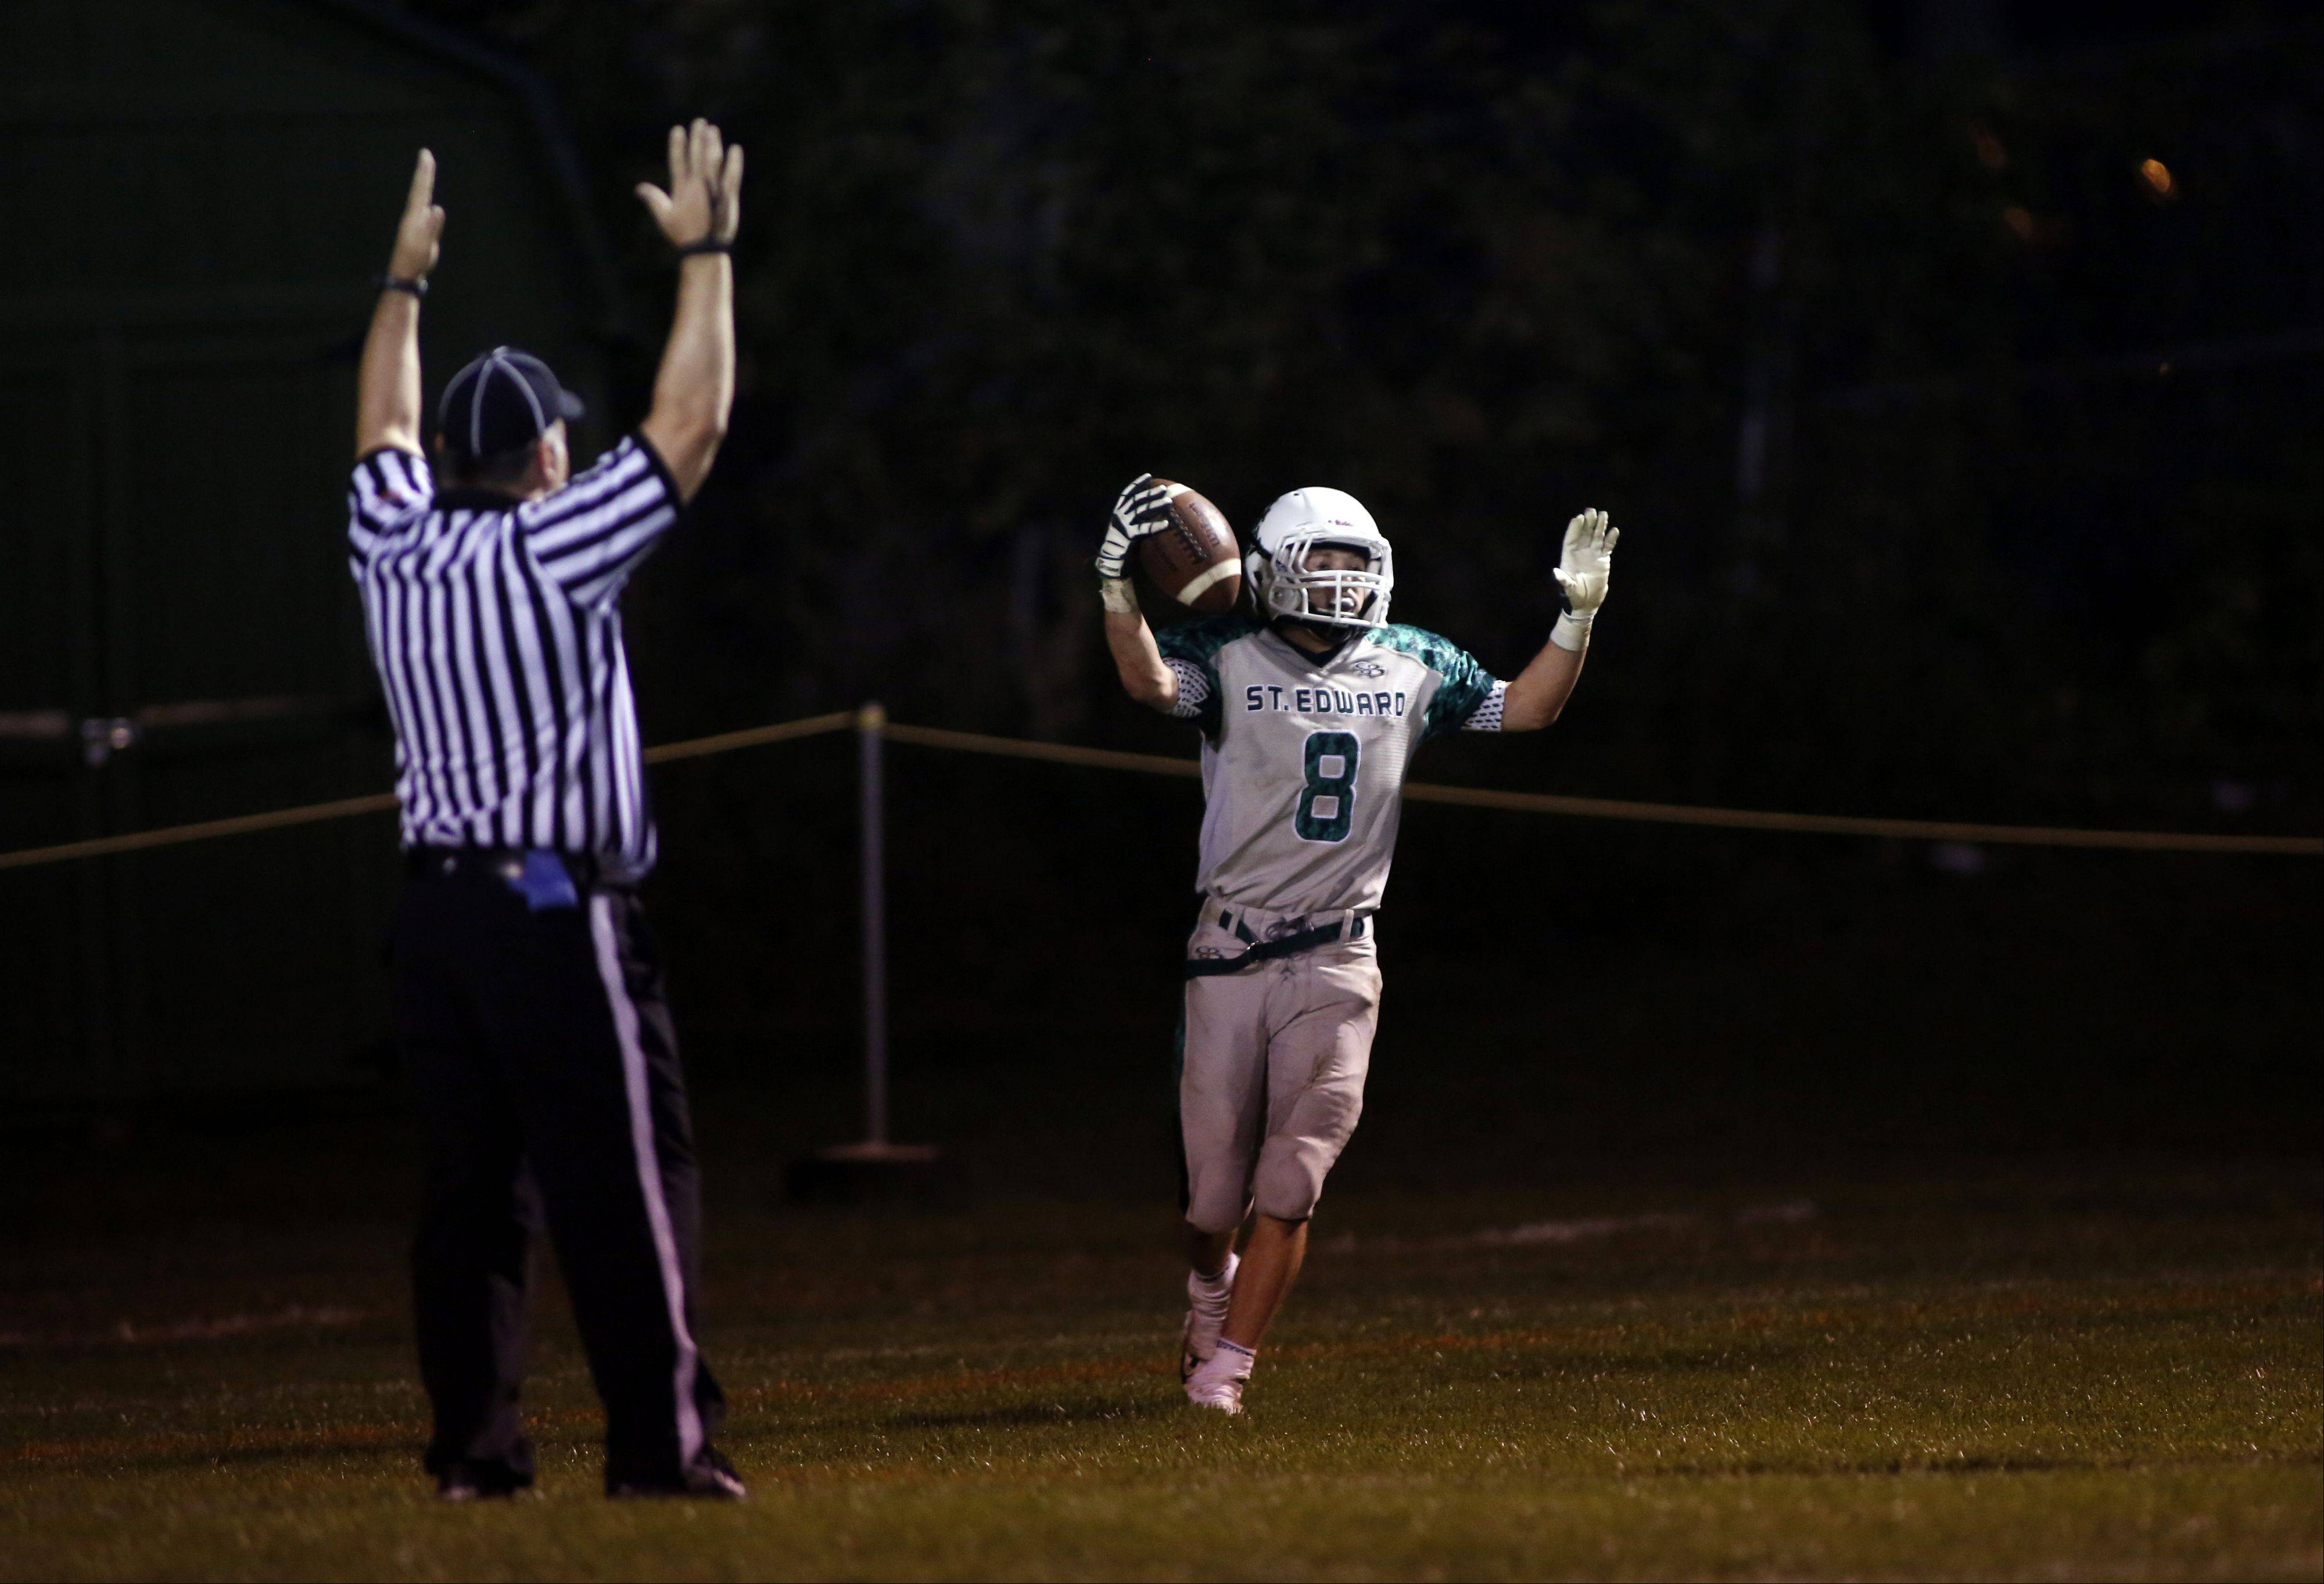 Images: Wheaton Academy vs. St. Edward football